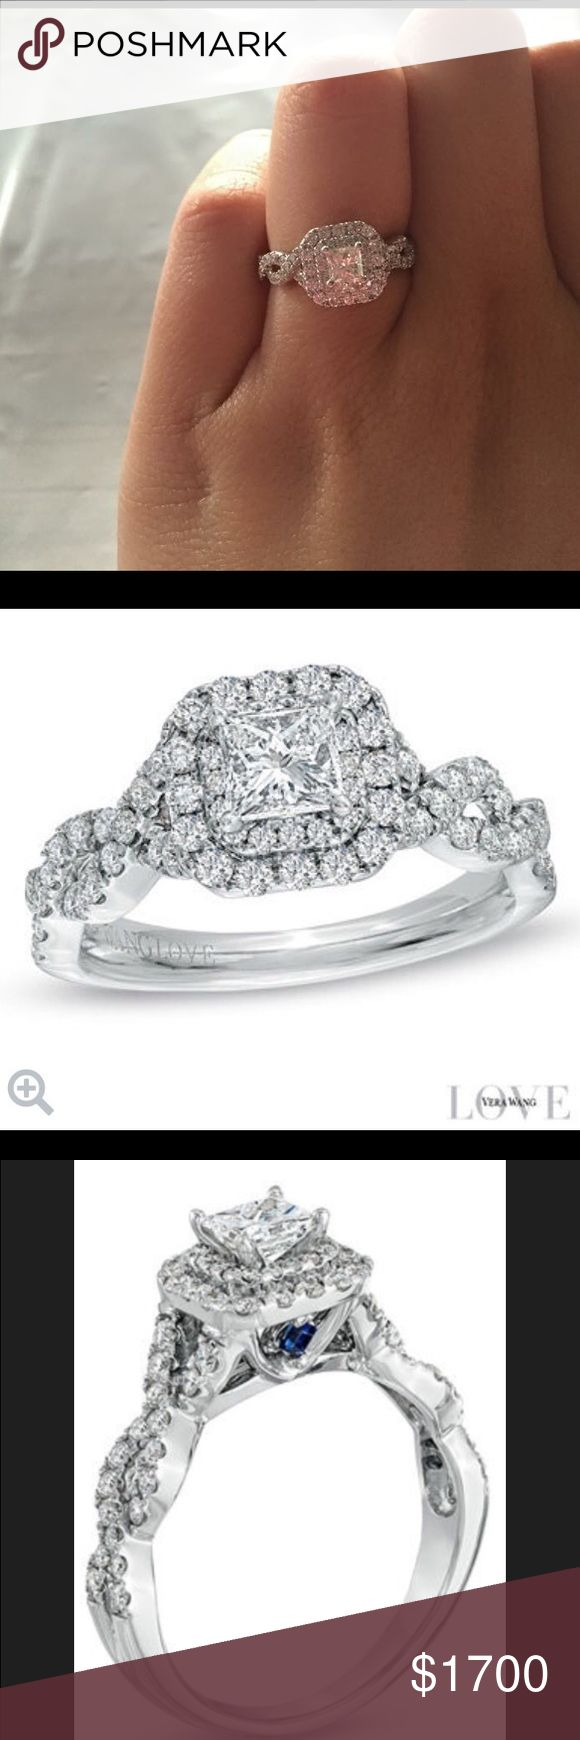 Inexpensive Engagement Rings Under 200